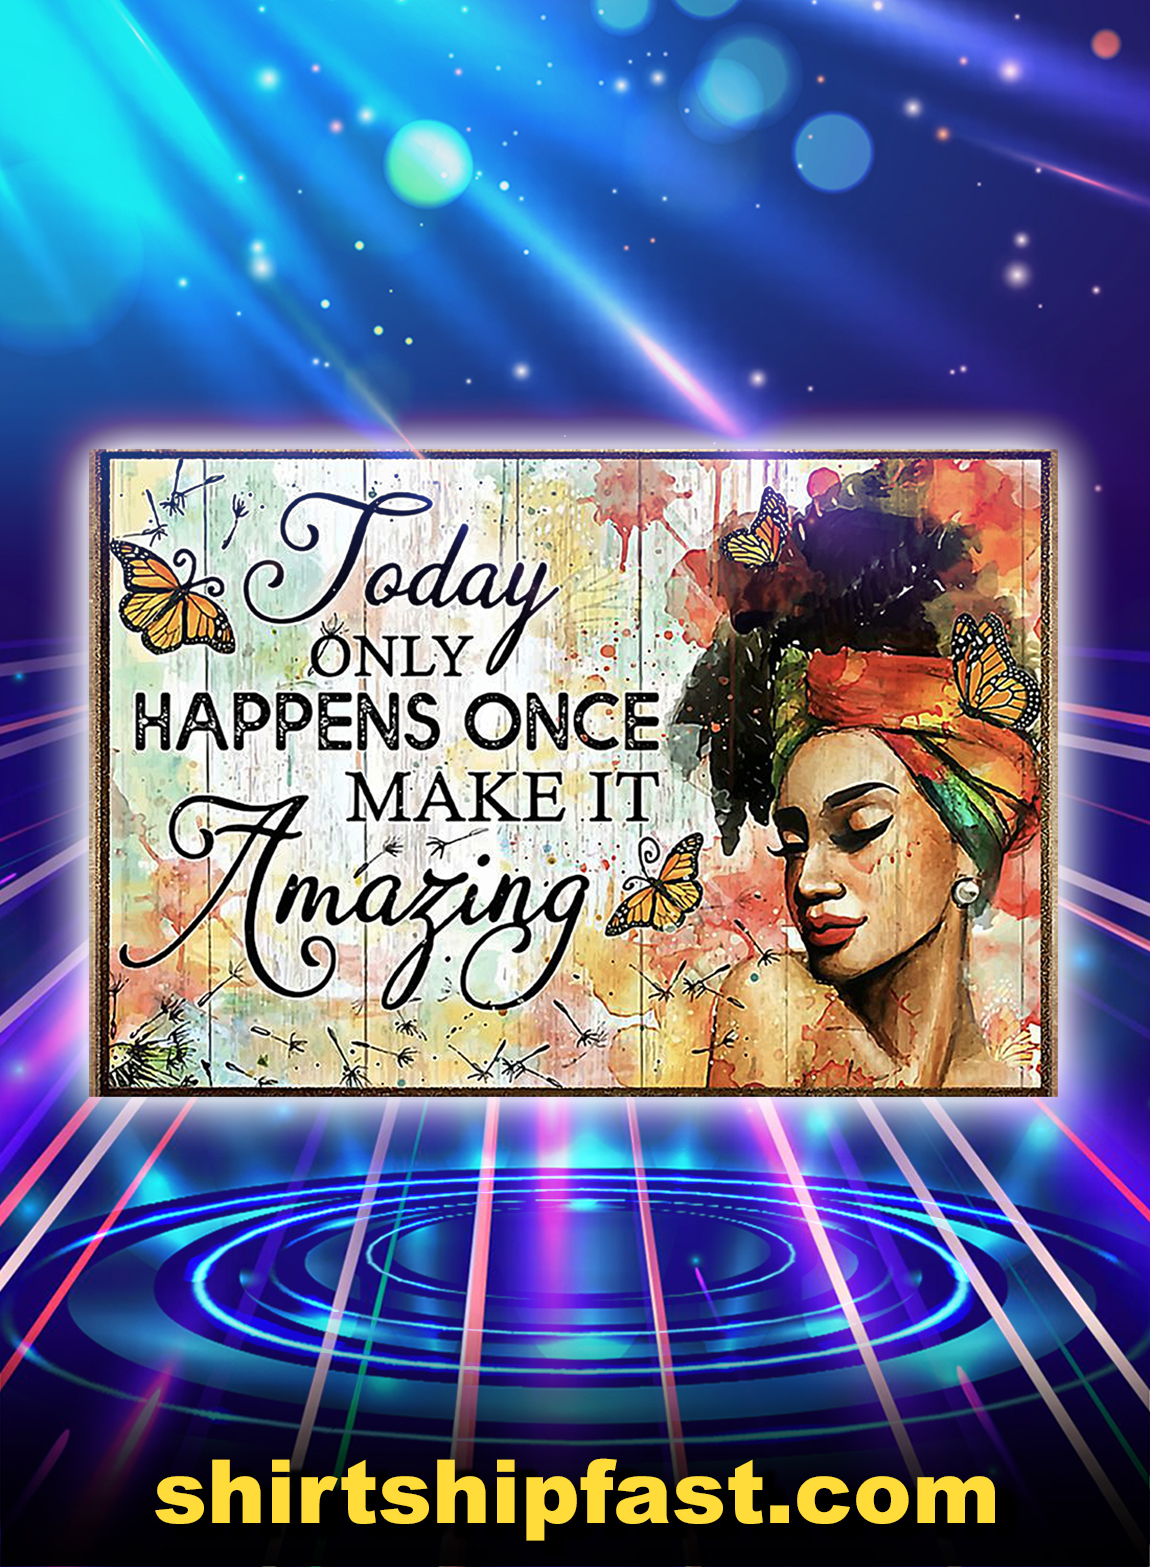 Butterfly girl today only happens once make it amazing poster - A2